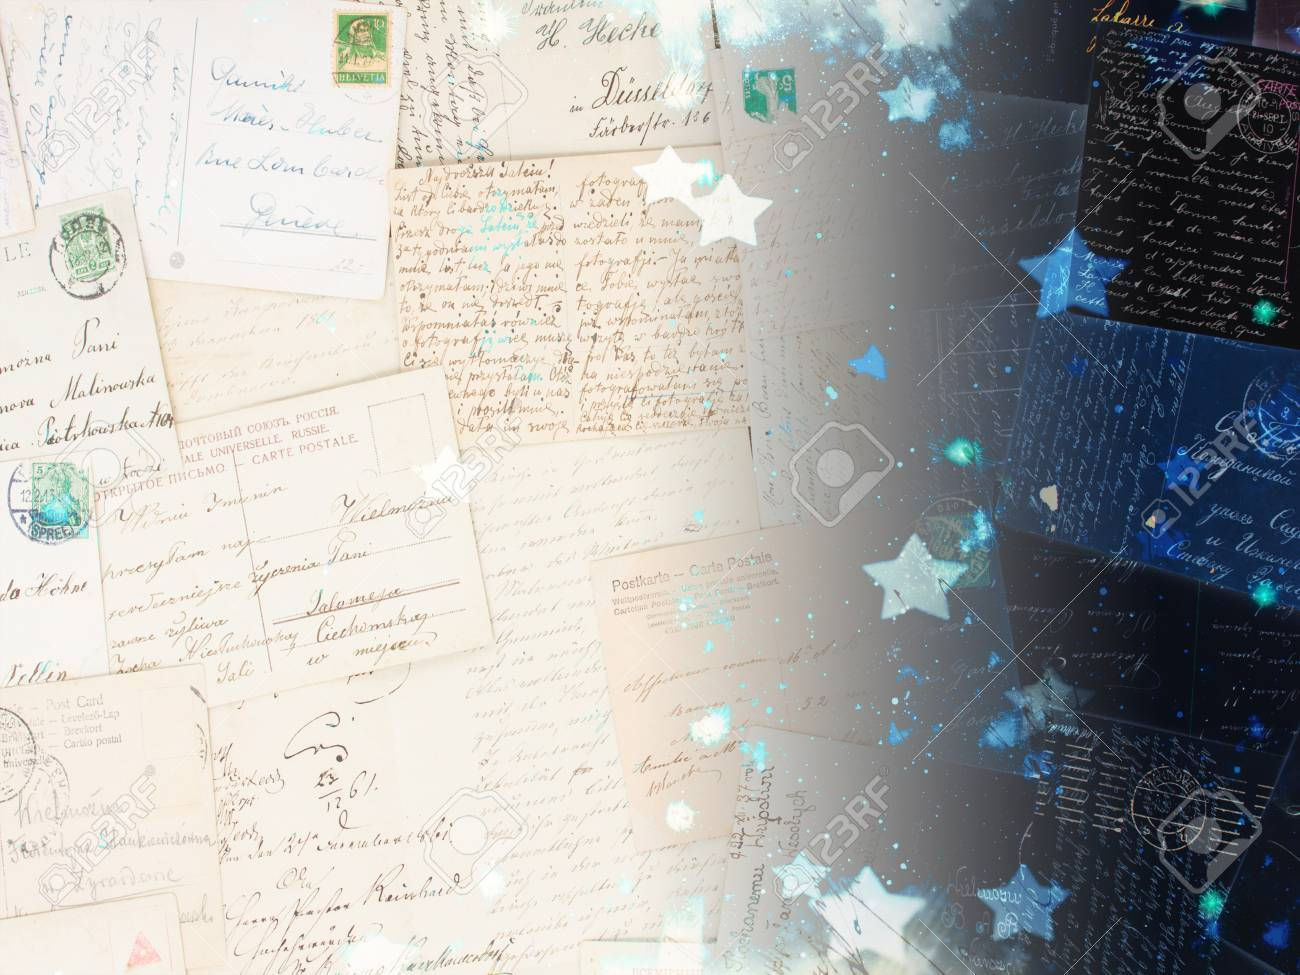 Old Postcards With Stary Night Background Dreaming And Memories 1300x975